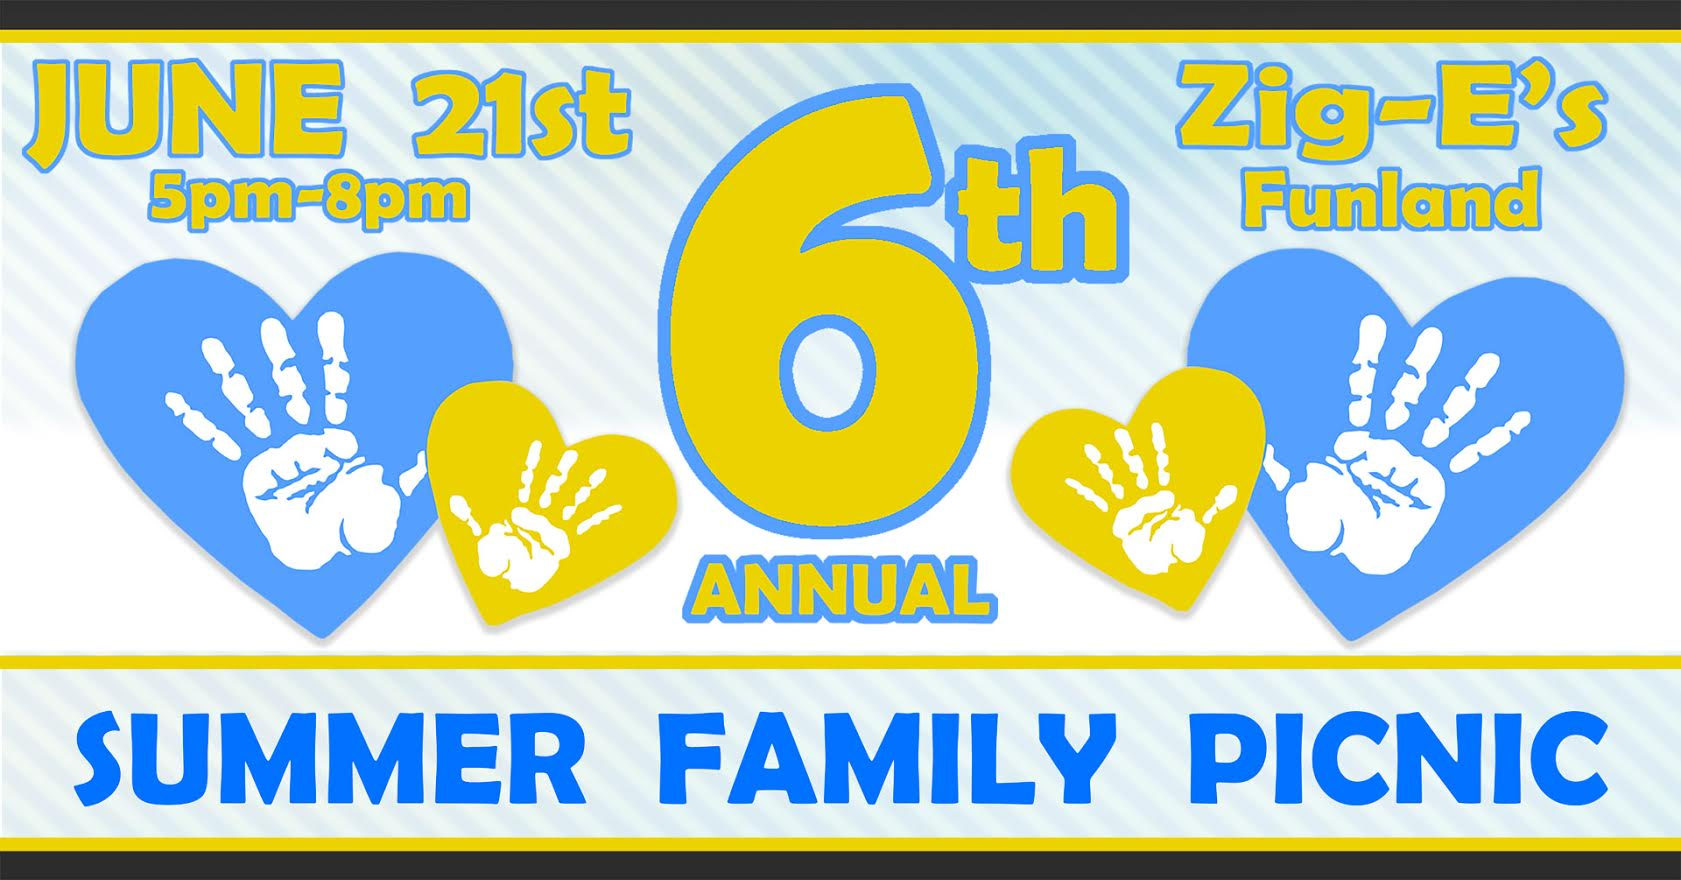 RAIN DATE ONLY: DSA 6th Annual Summer Family Picnic @ Zig-E's Funland